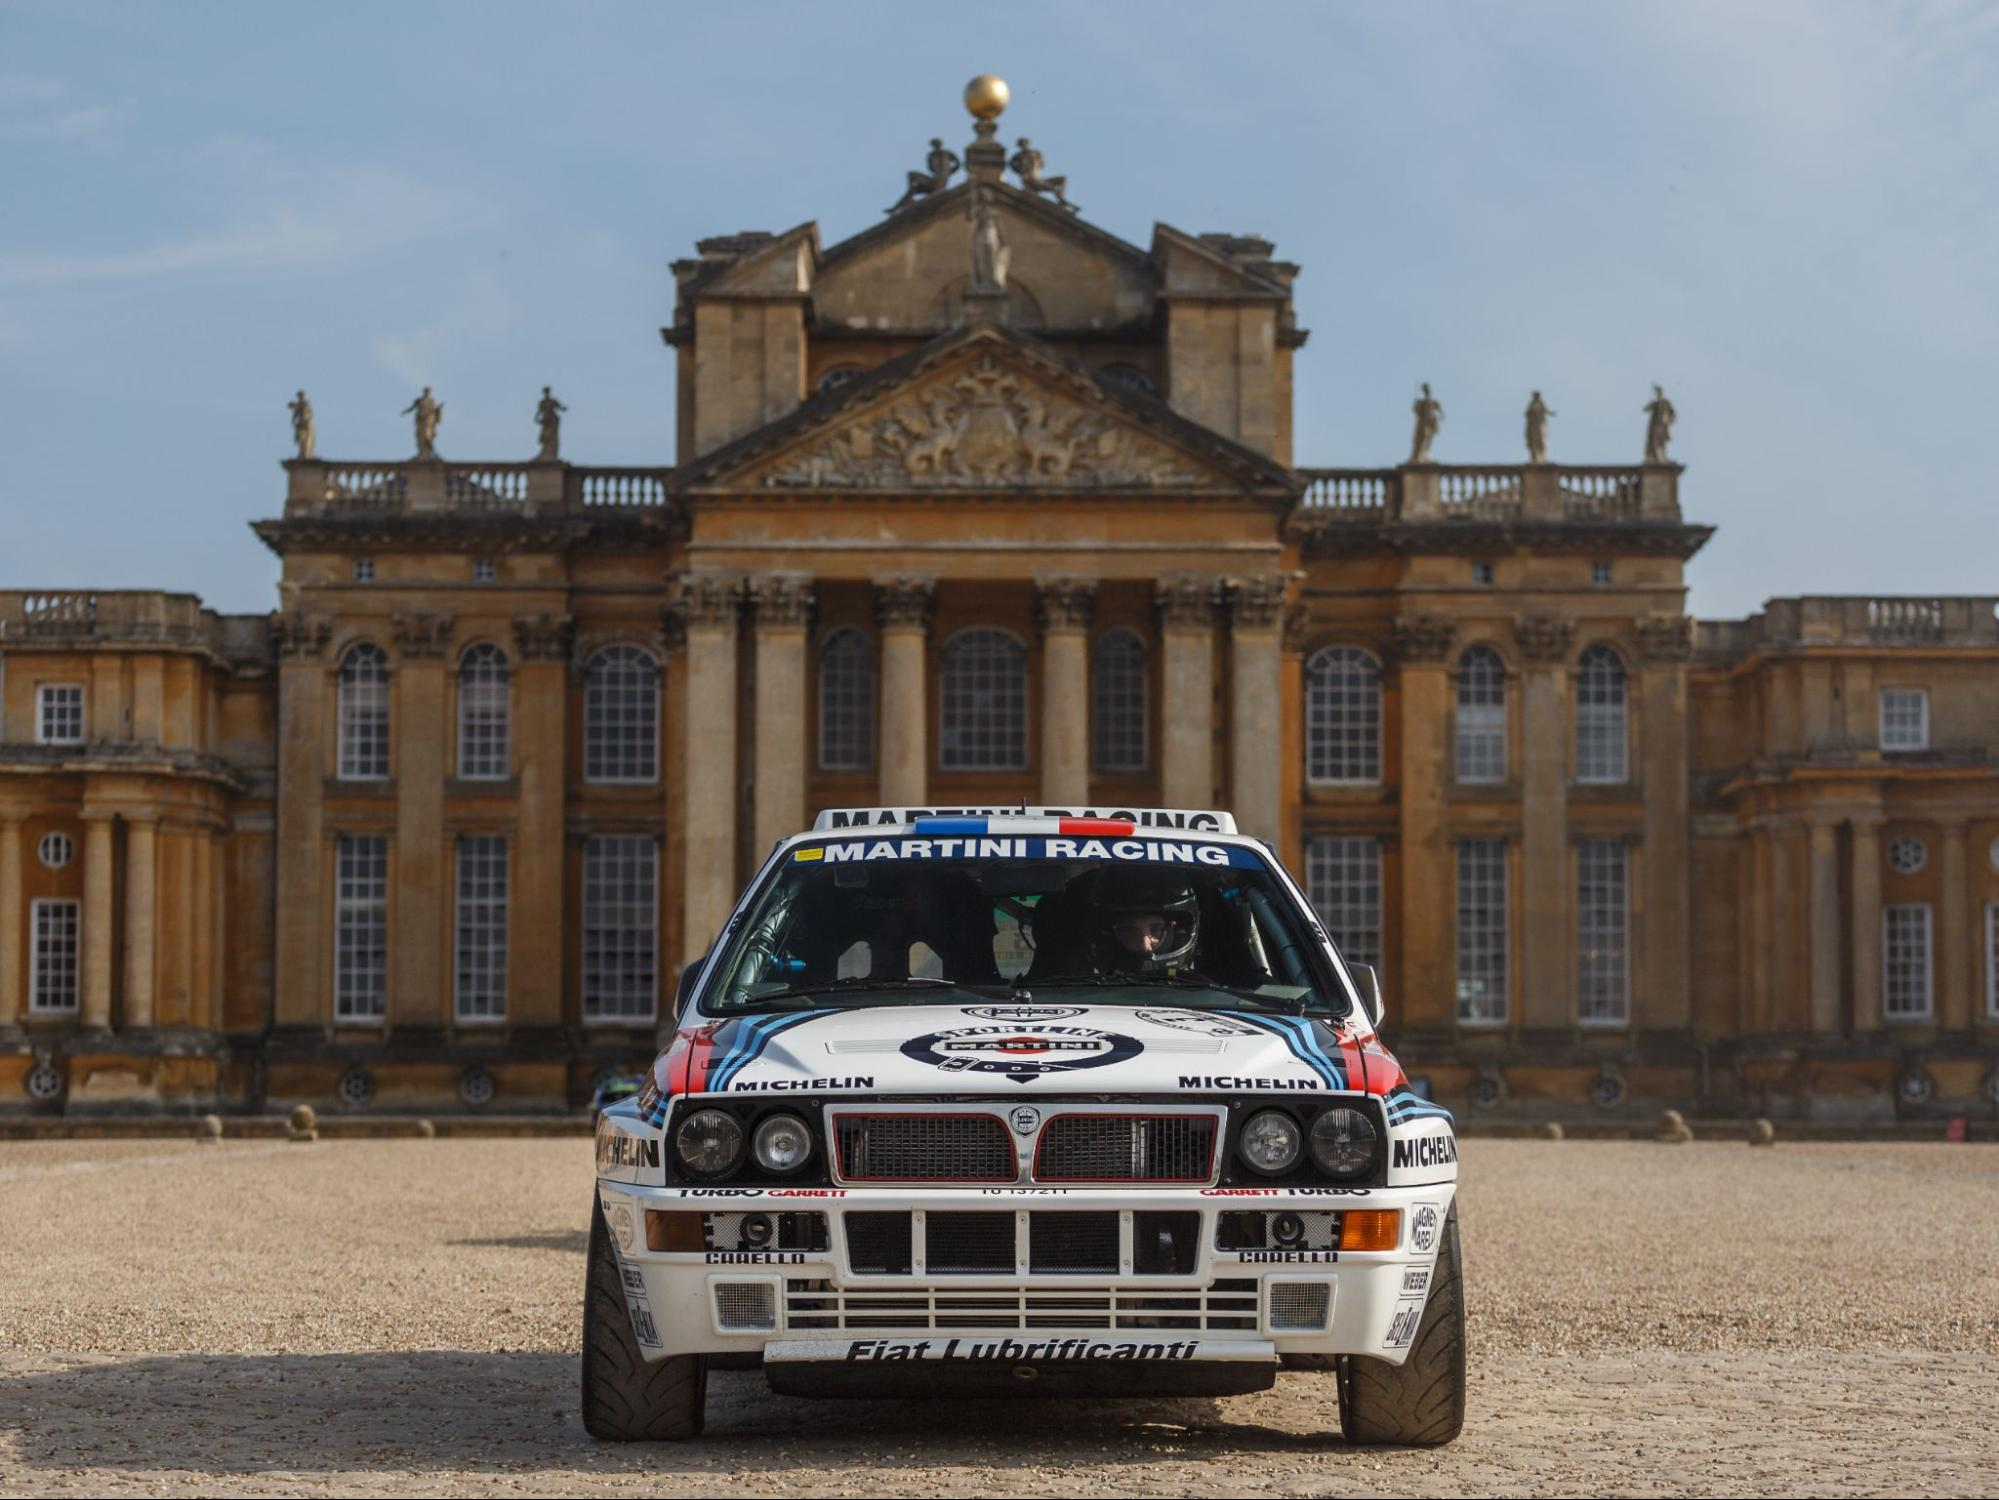 Lancia Delta Integrale GrA as part of the tribute to World Rally Champions